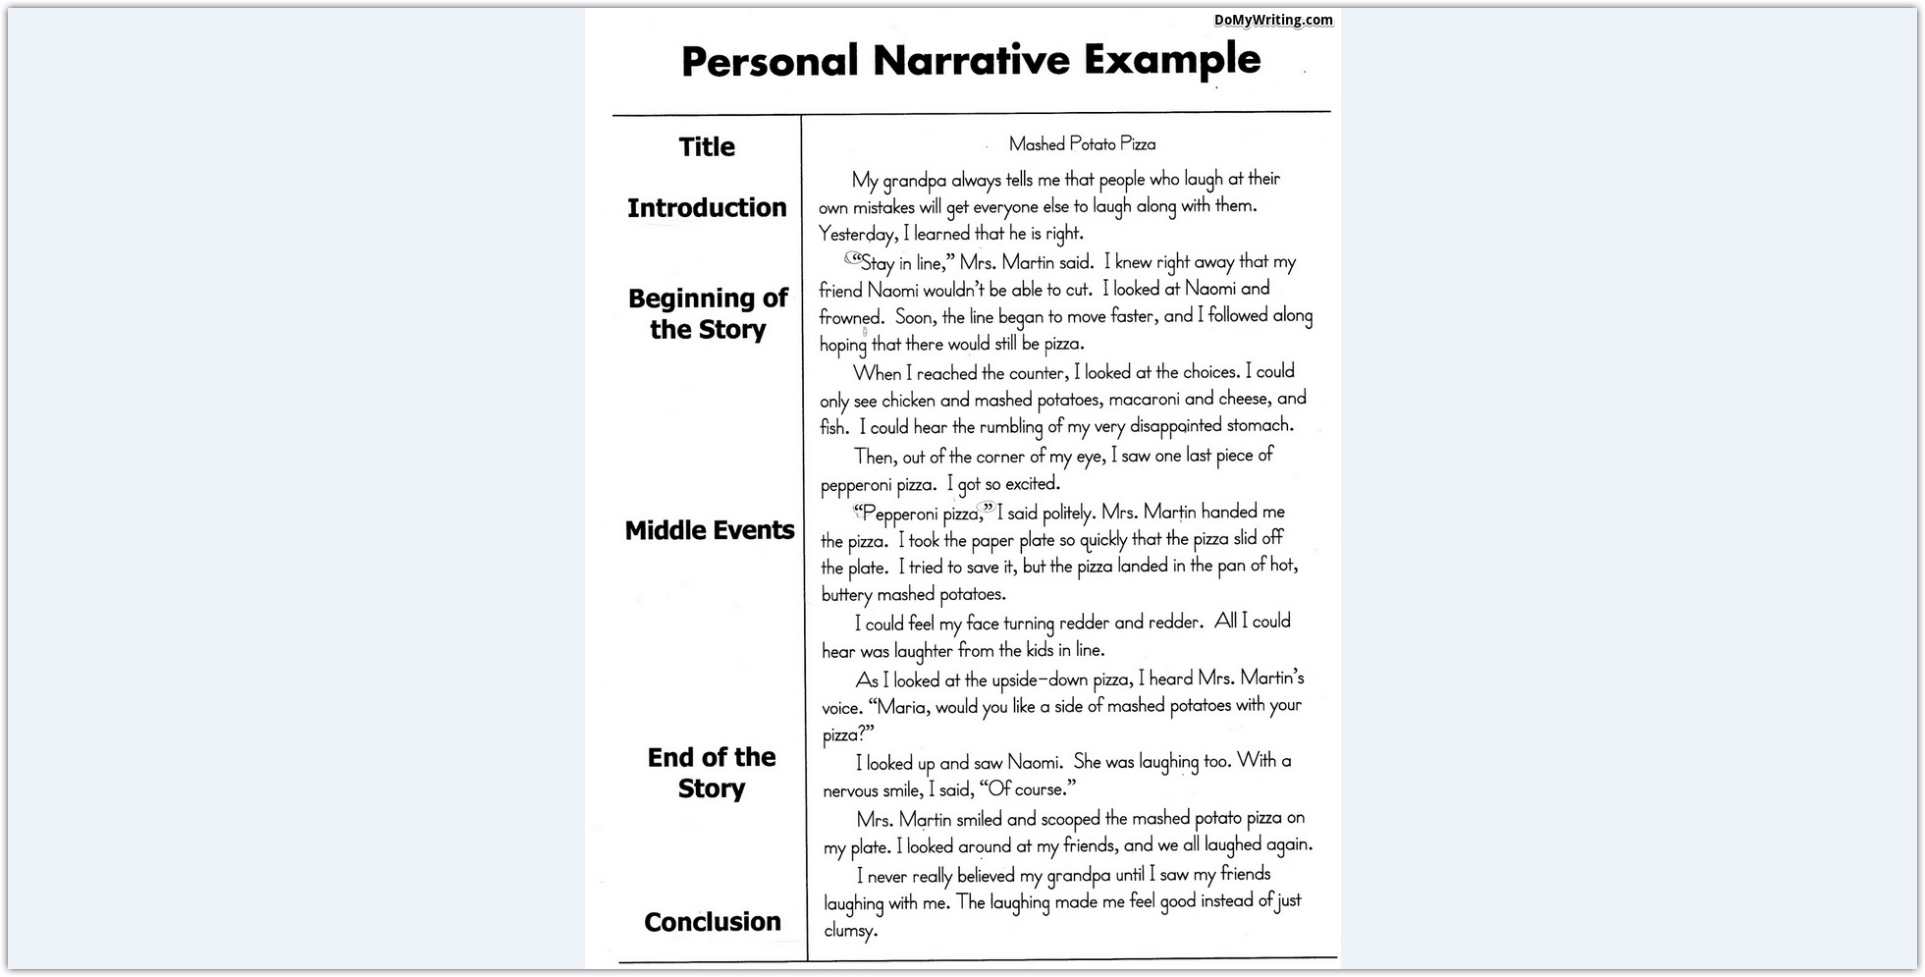 002 Narrative Essay Example What Is Breathtaking A Sample 5th Grade In Third Person Full